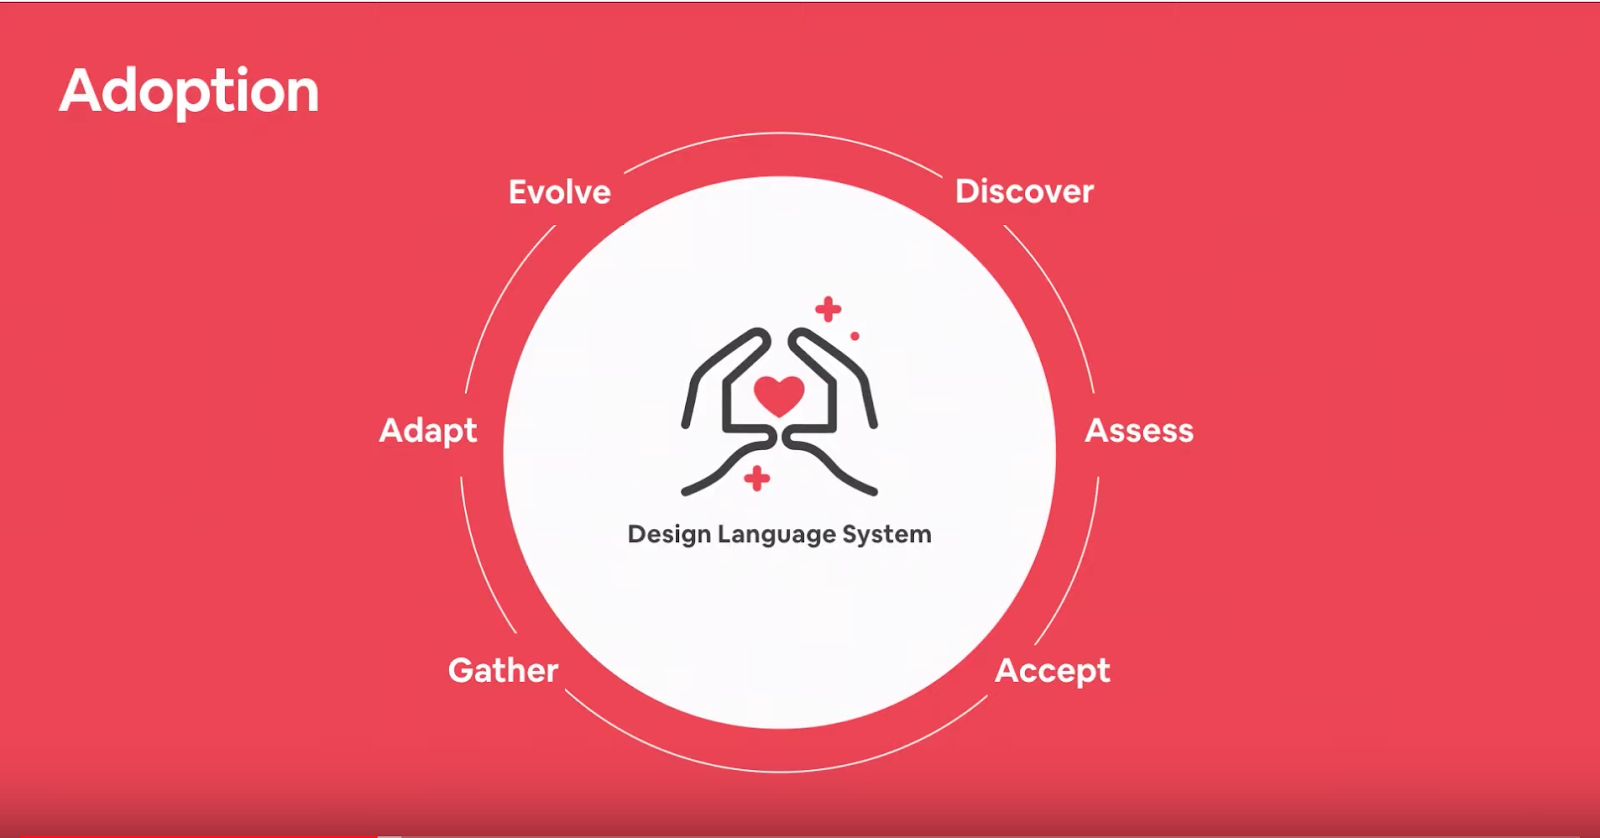 The Airbnb Design Language System adoption model considers all aspects of the adoption cycle: discover, assess, accept, gather, adapt and evolve.